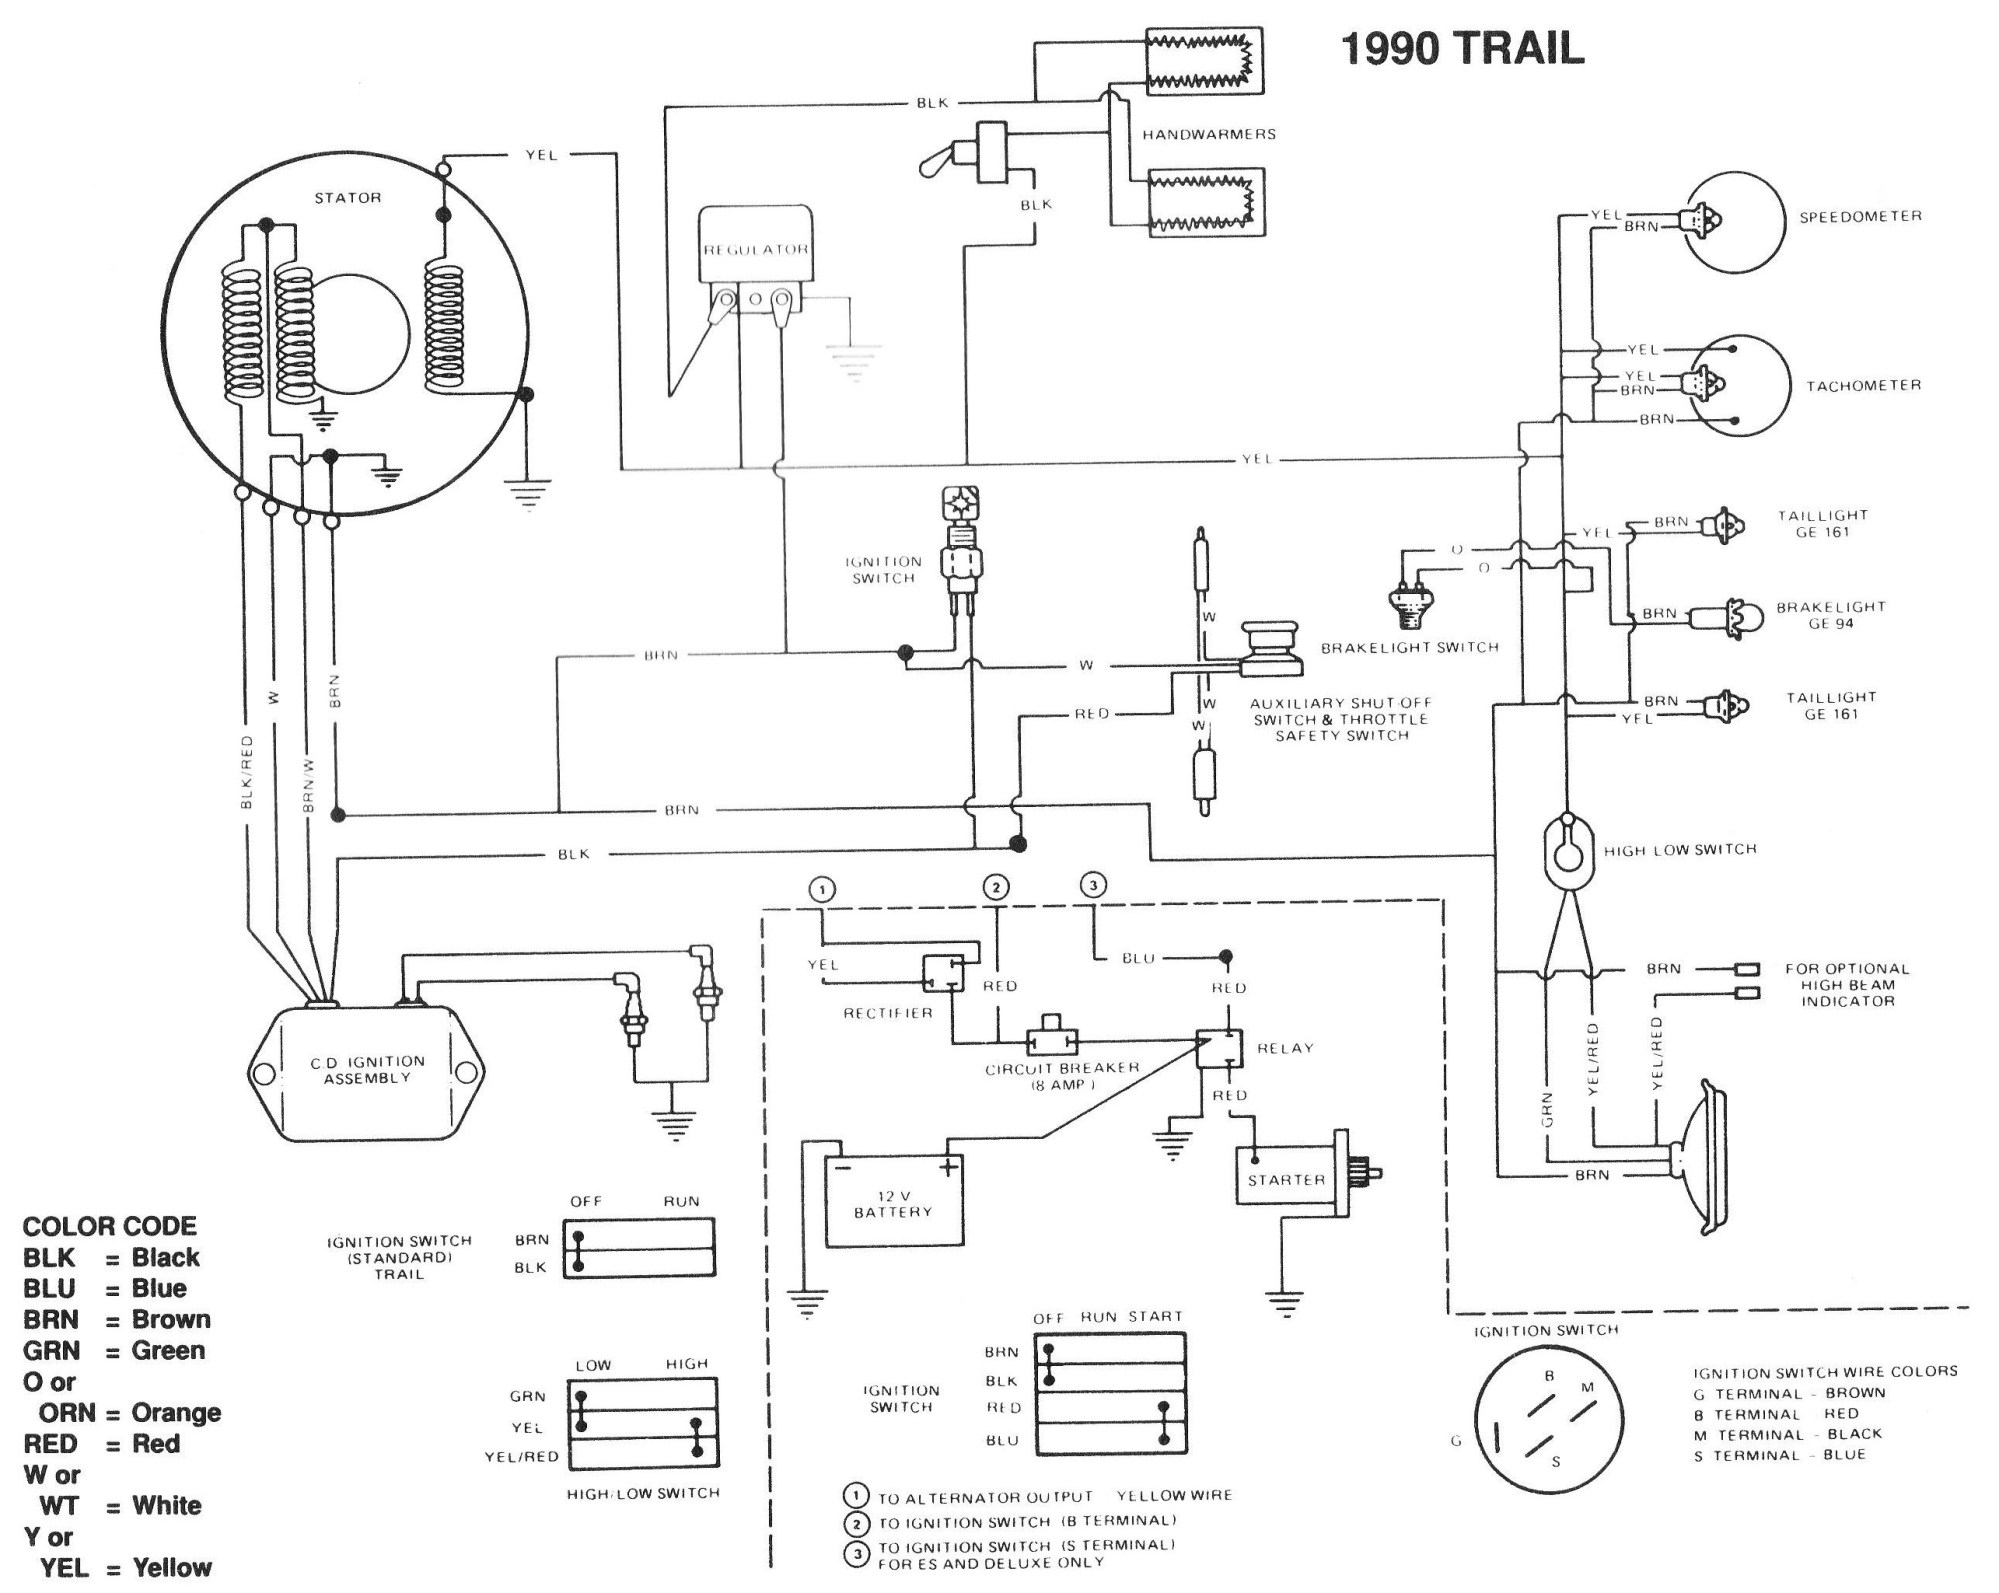 hight resolution of indy trail 488 fan wire diagram polaris 50 wiring schematic polaris wiring schematic 10